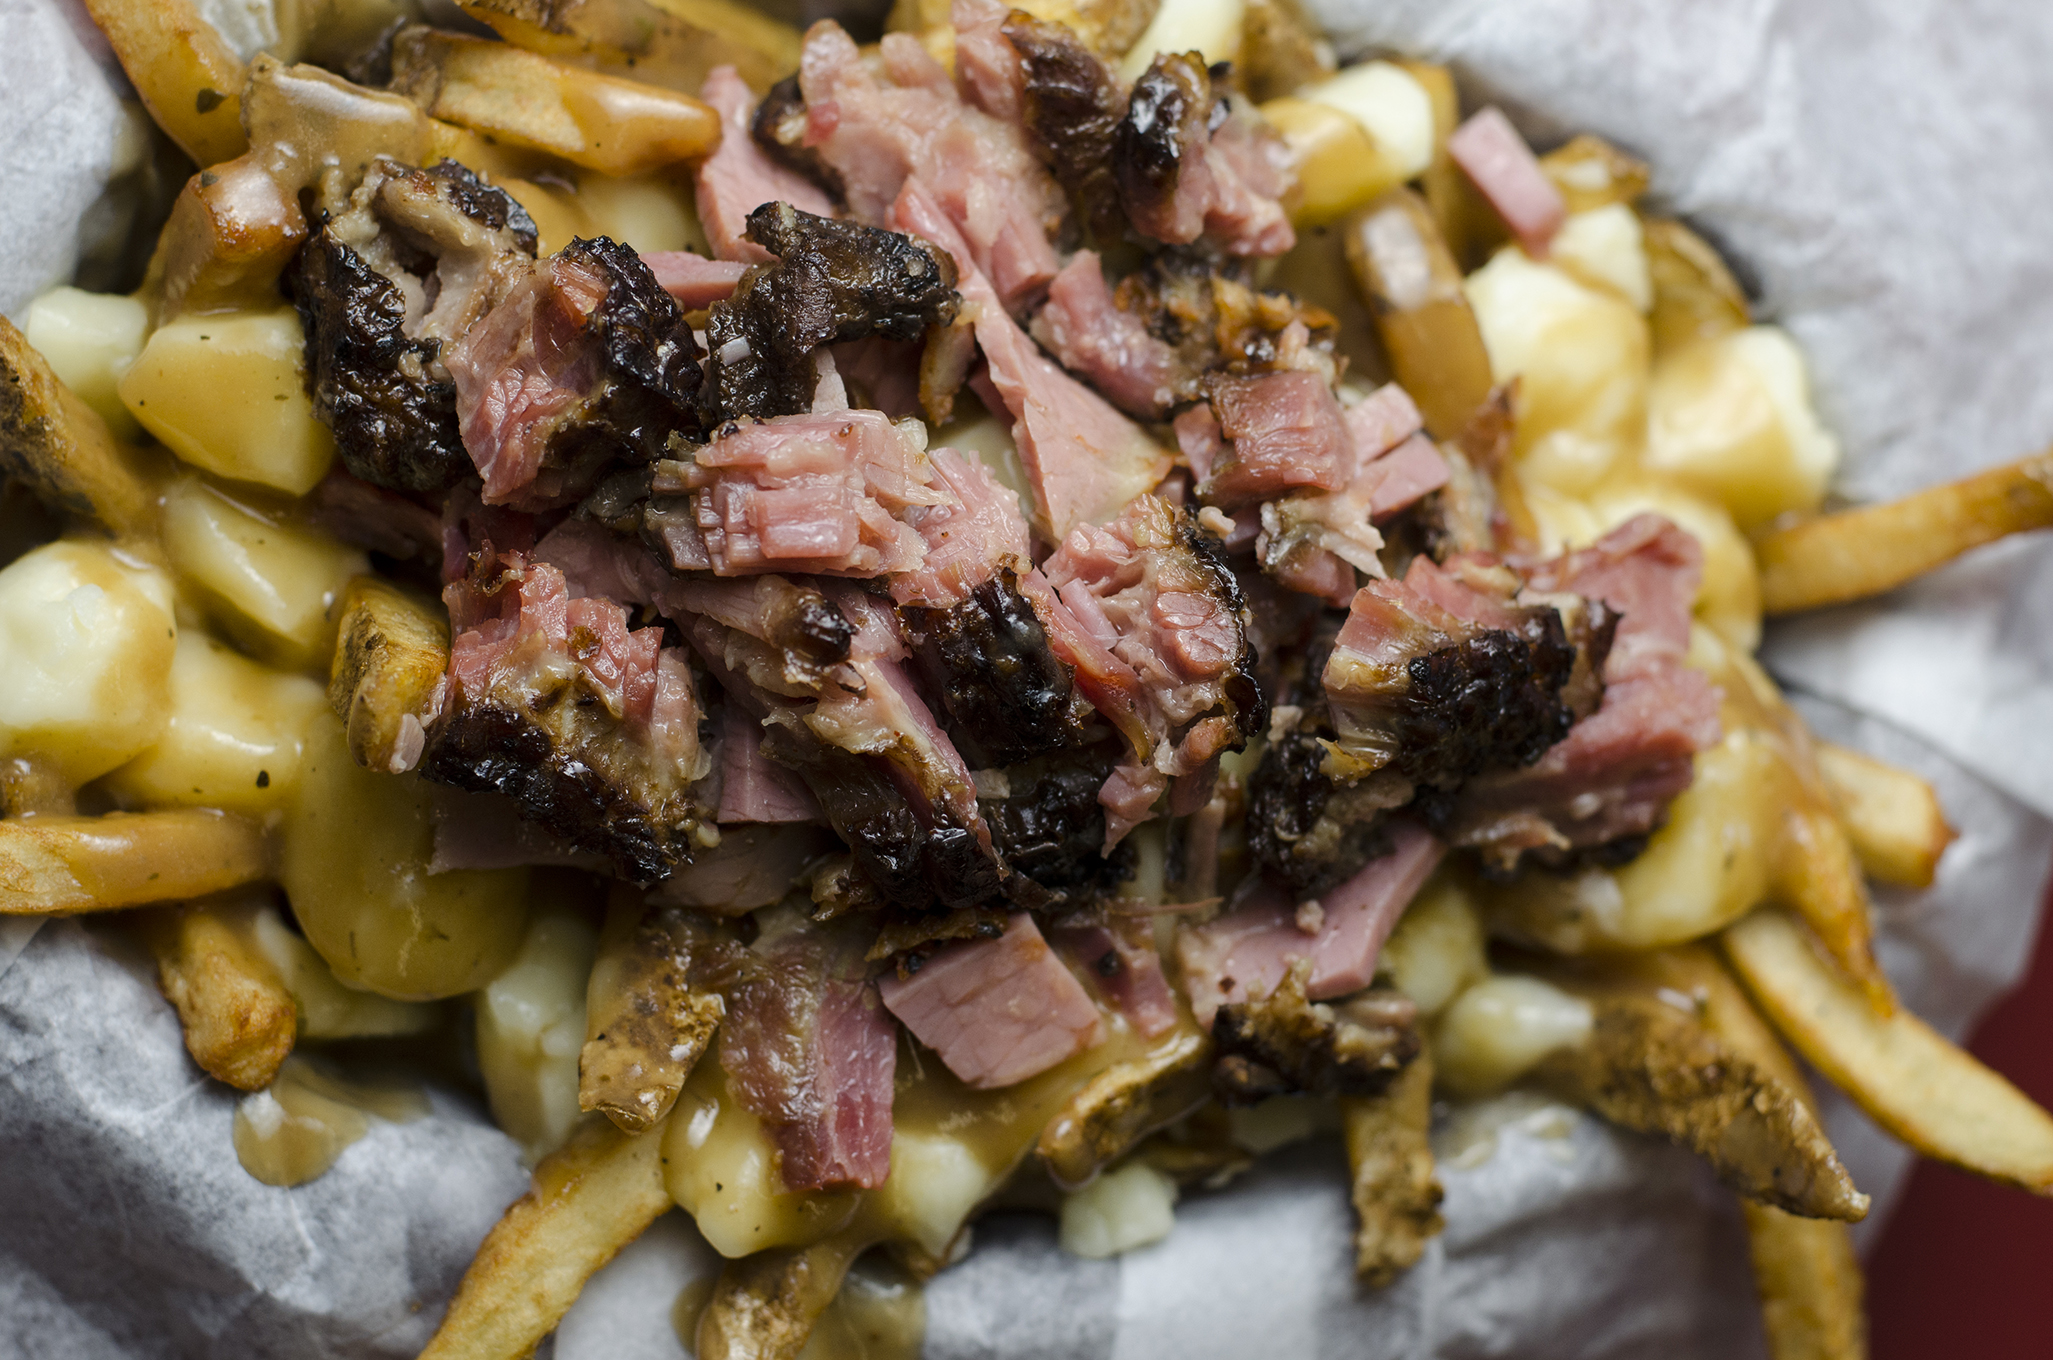 Two Canadian classics in one dish: a Montreal smoked meat poutine from Malic's Deli in Windsor, Ontario.